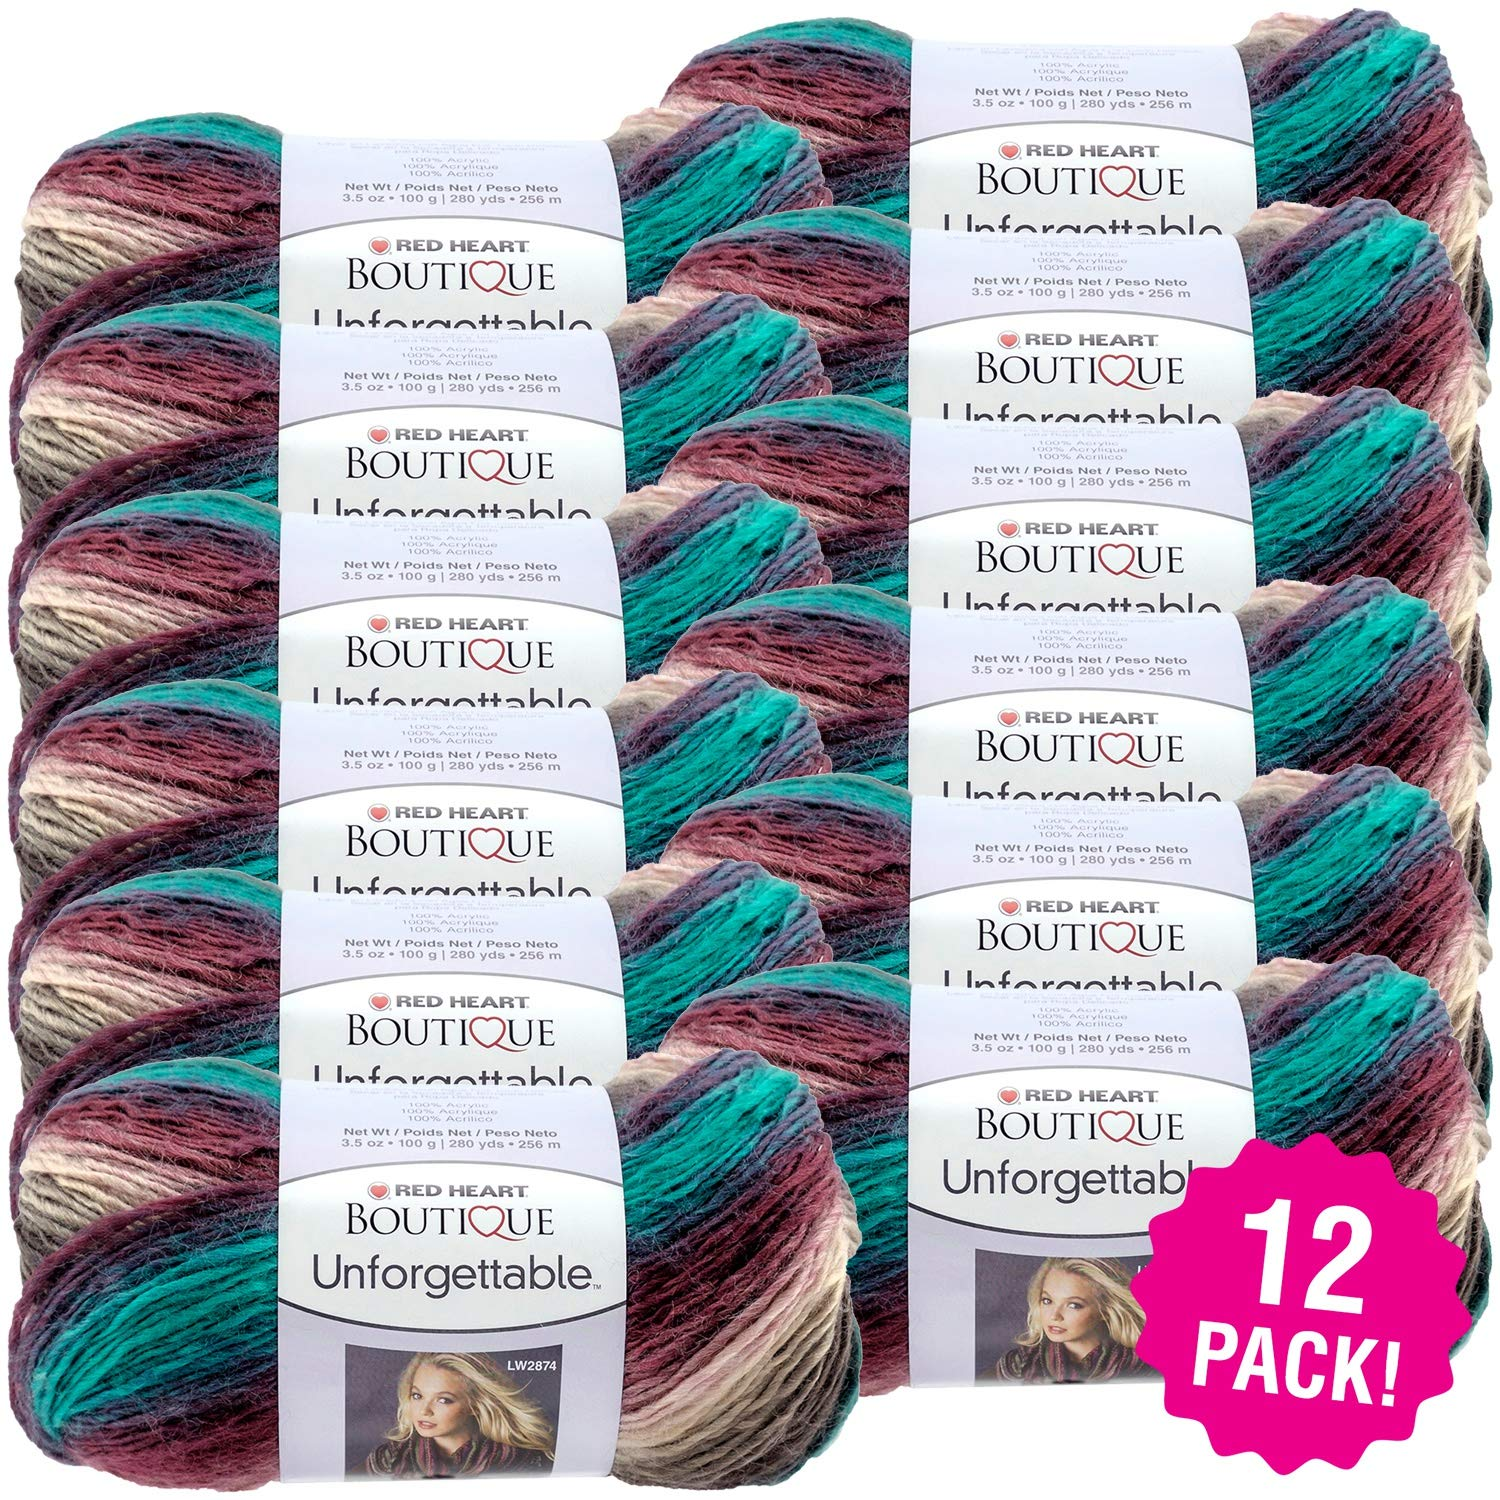 Red Heart 99470 Boutique Unforgettable Yarn 12/Pk-Tealberry, Pack